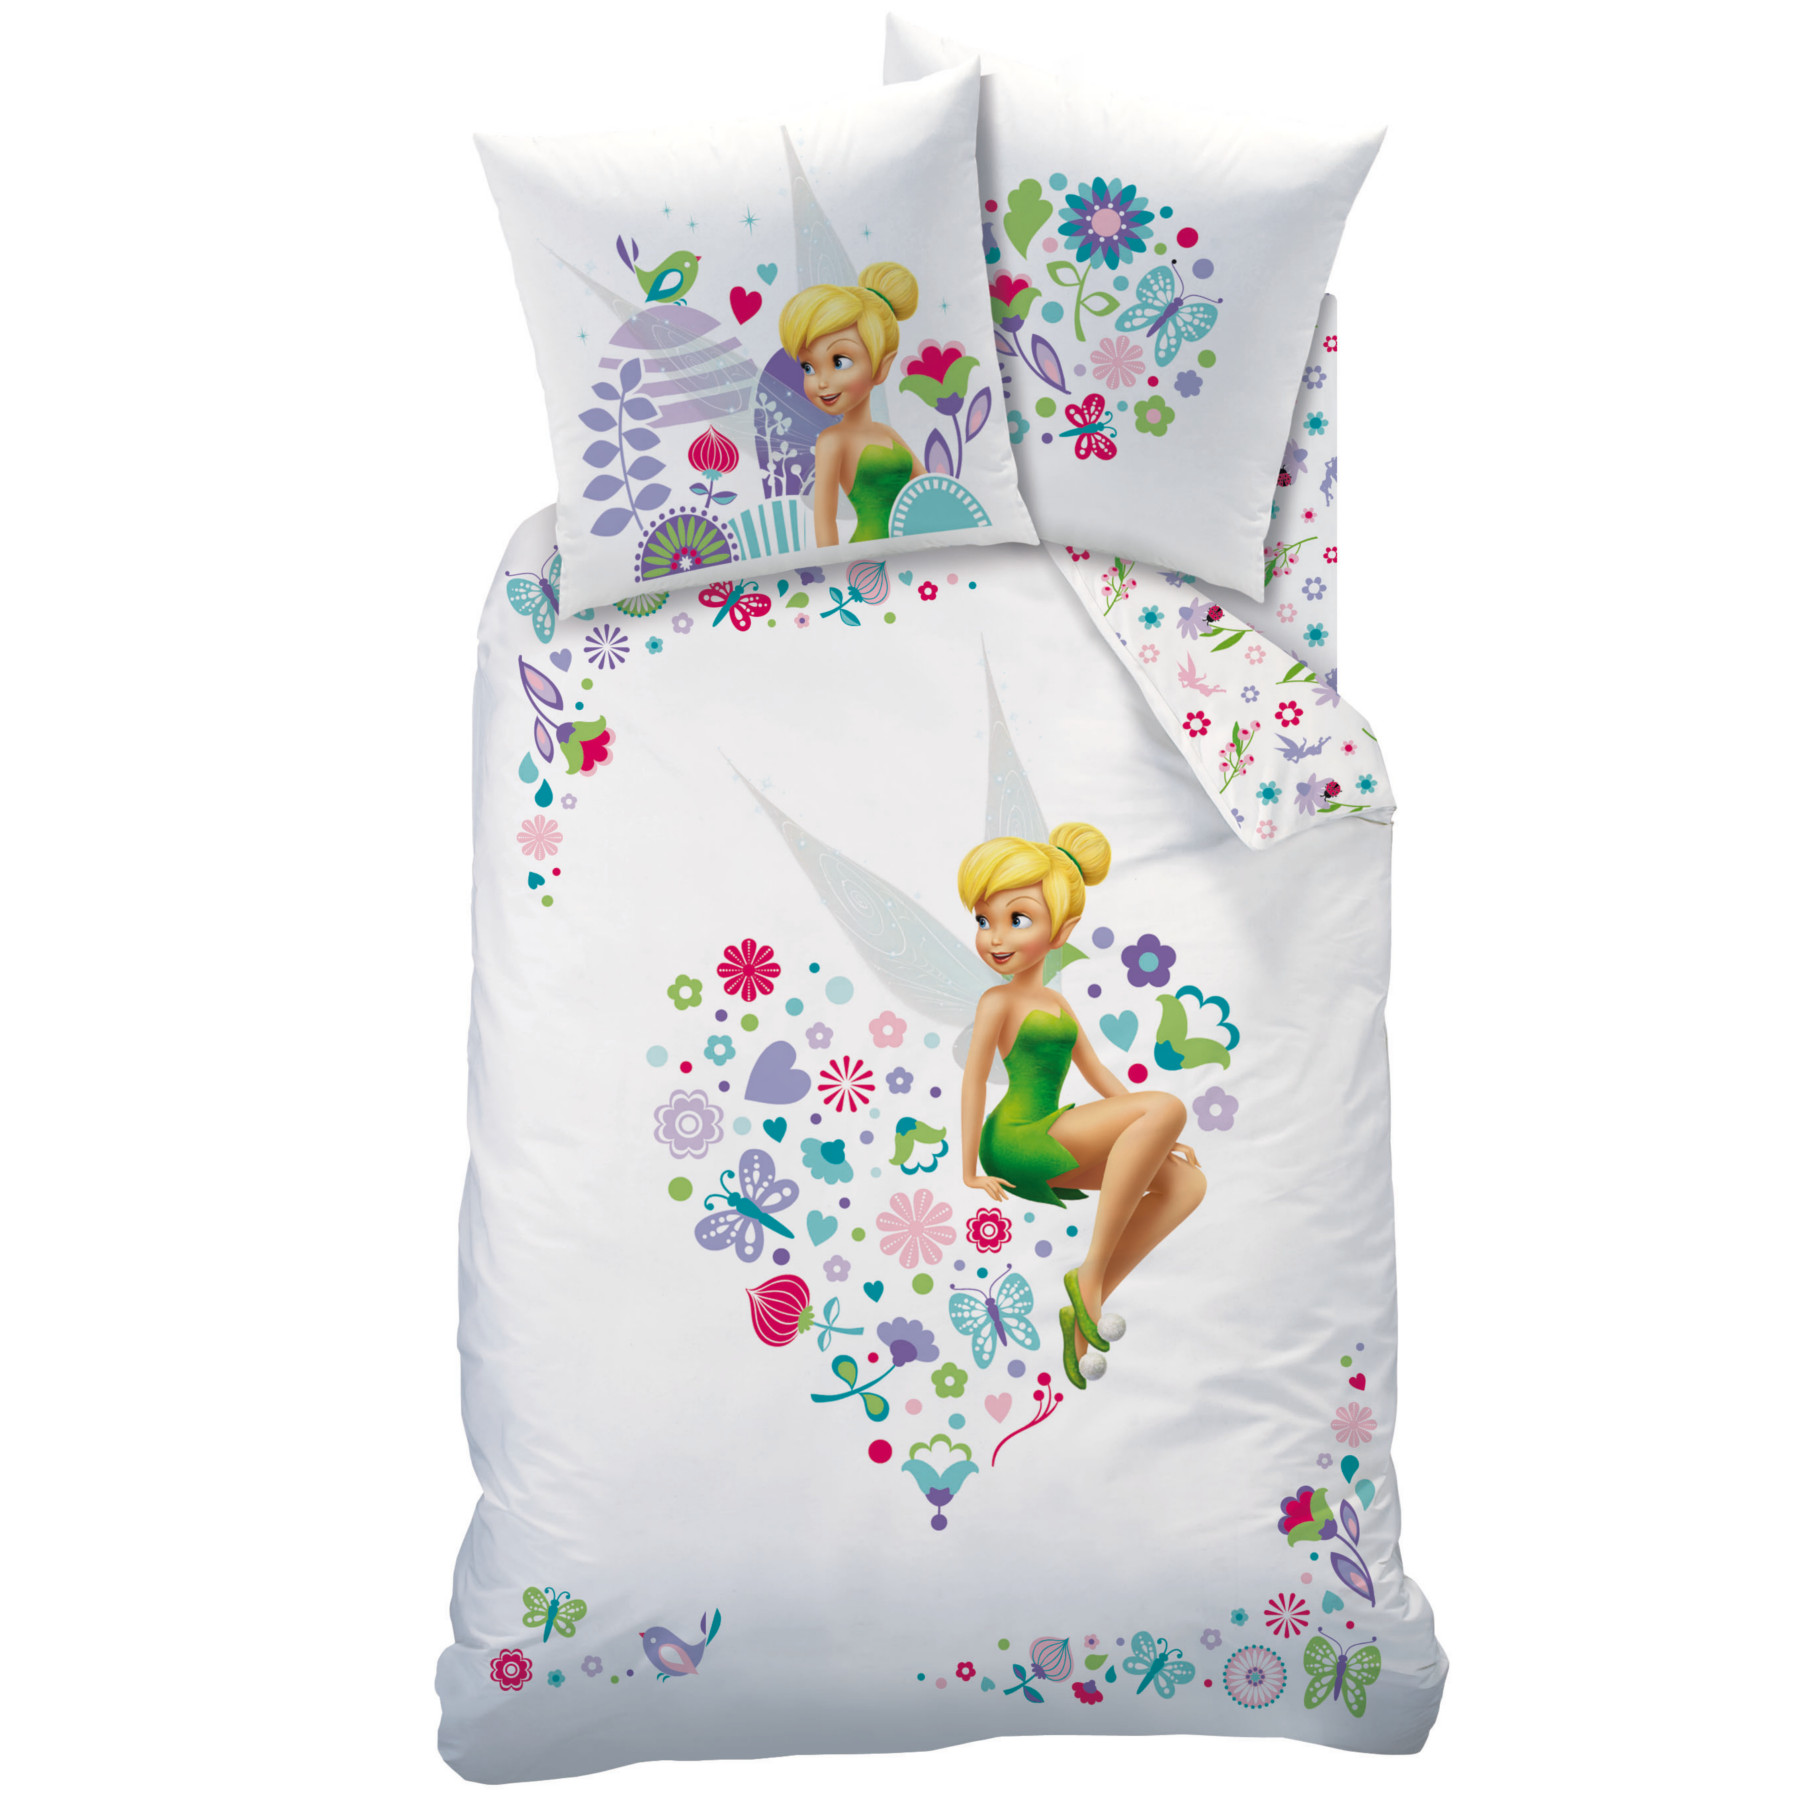 disney fairies f e clochette parure de lit housse de couette r versible 140 x 200 cm. Black Bedroom Furniture Sets. Home Design Ideas